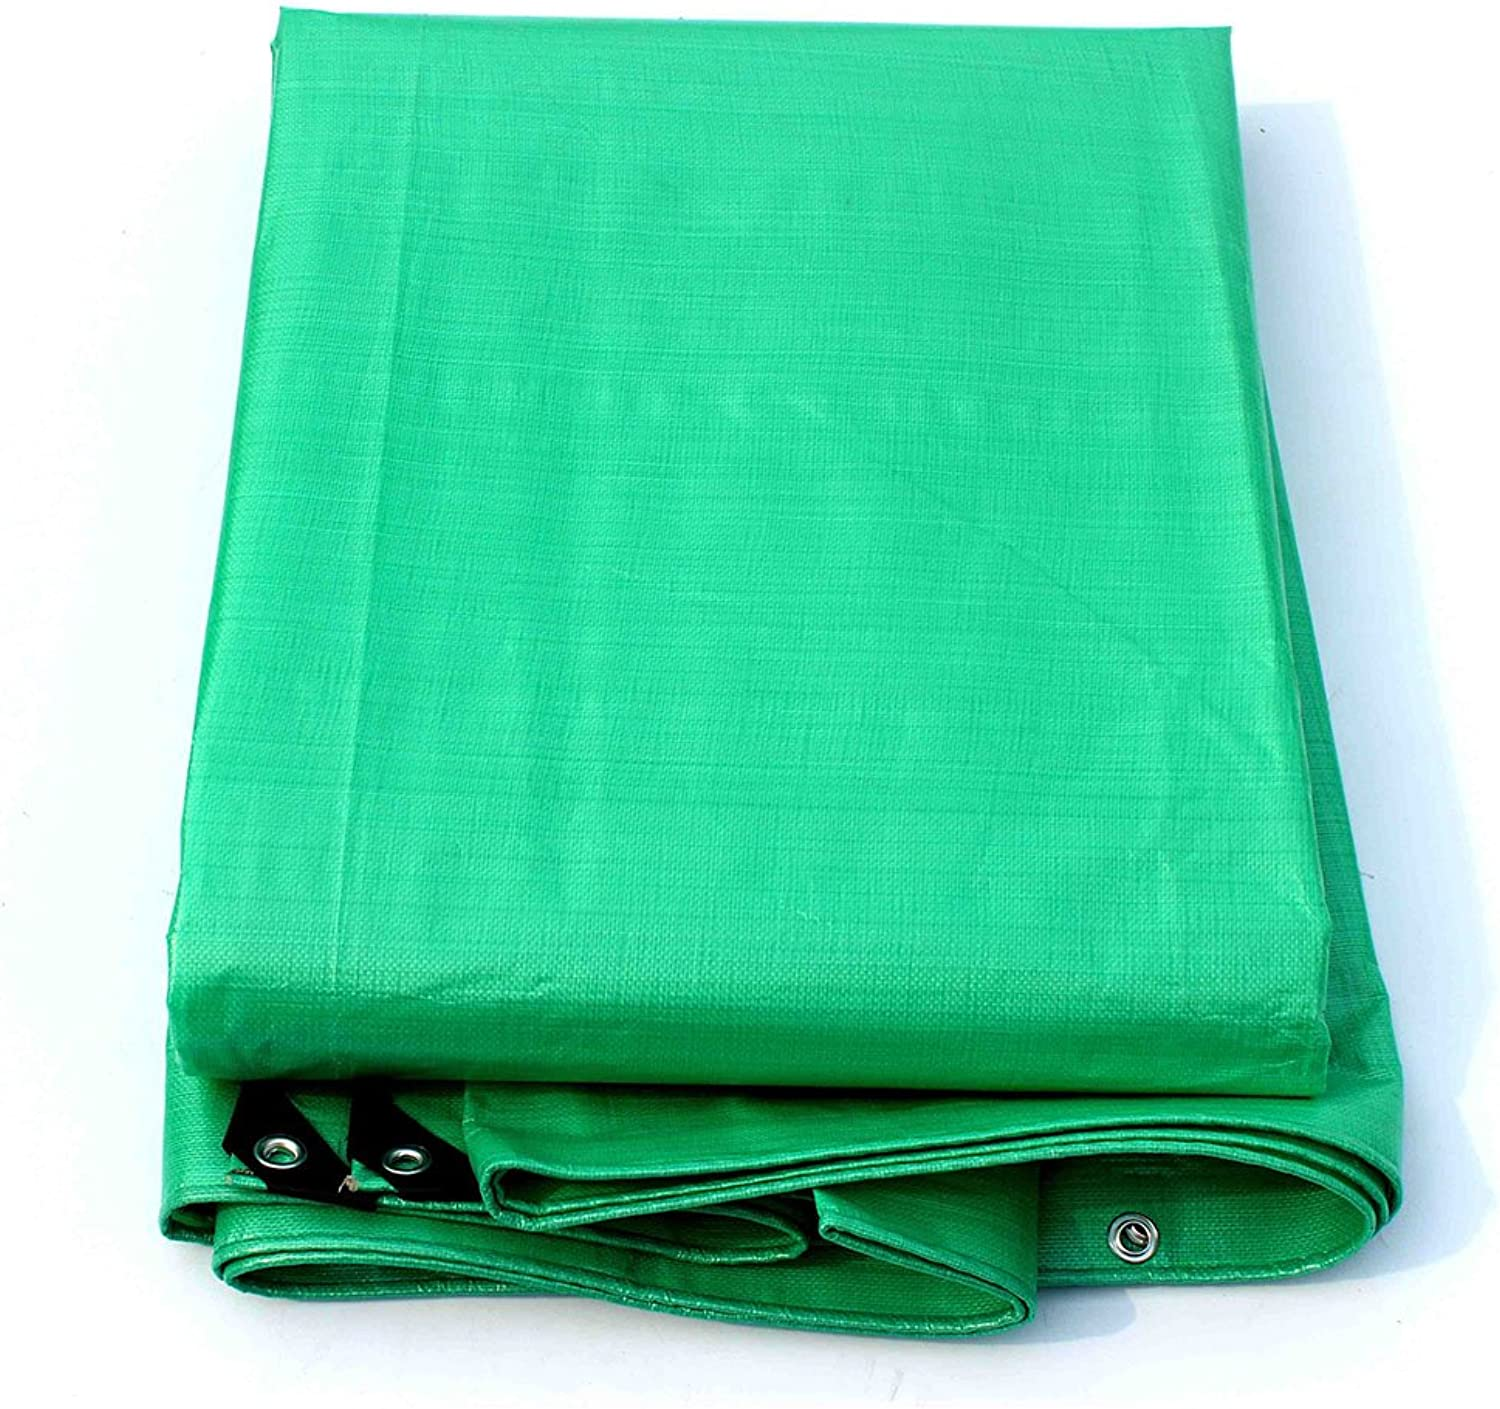 Tarps Tarpaulin PE Waterproof Tarpaulin Ground Sheet Covers for Camping, Fishing, Gardening 180g m2 Thickness 0.48mm, MultiSize Optional (Size   2  3M)